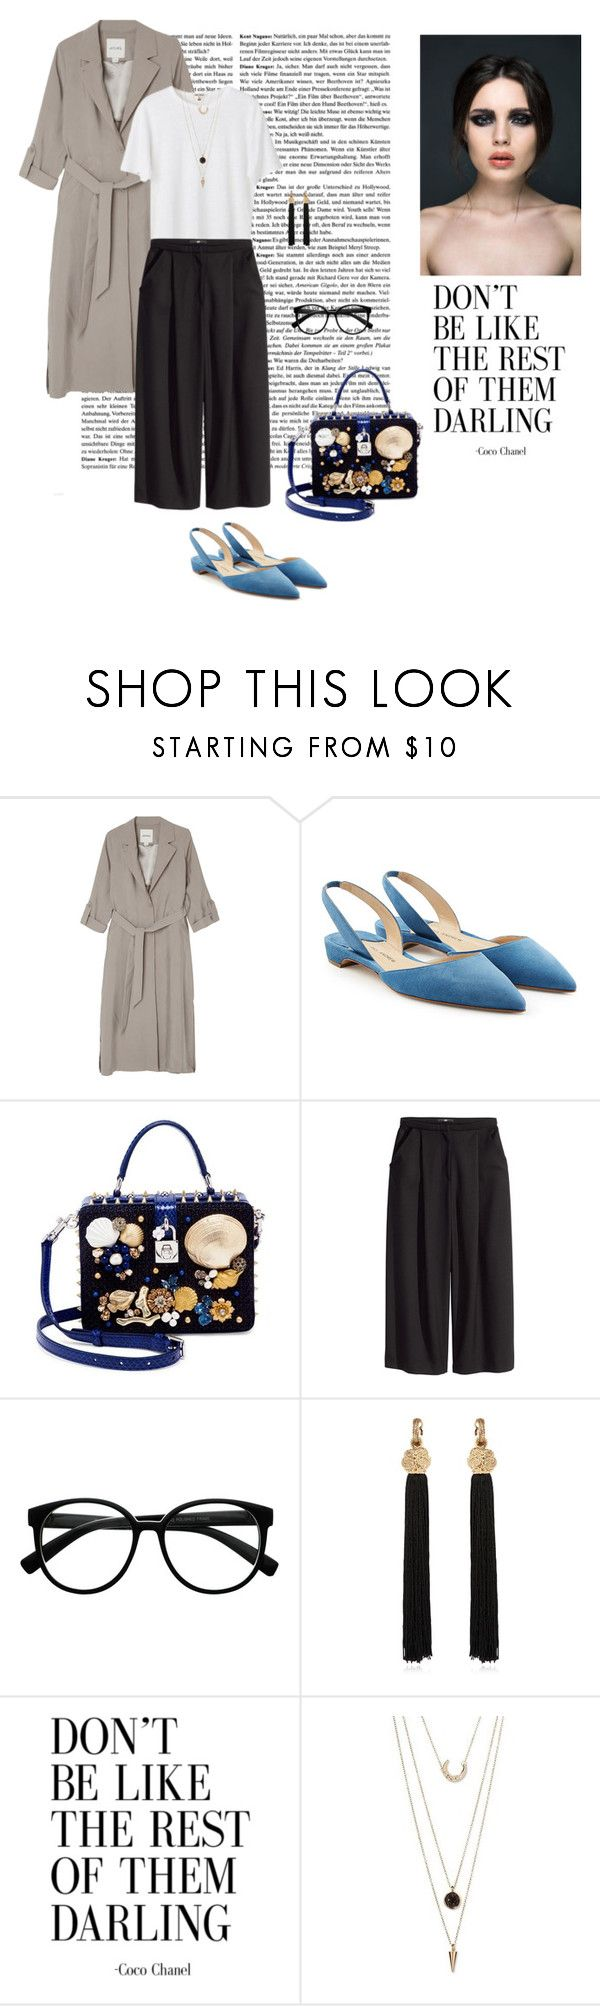 """Lovely May 17/05"" by dorey on Polyvore featuring Monki, Paul Andrew, Dolce&Gabbana, H&M, Retrò, Yves Saint Laurent and SUGARFIX by BaubleBar"